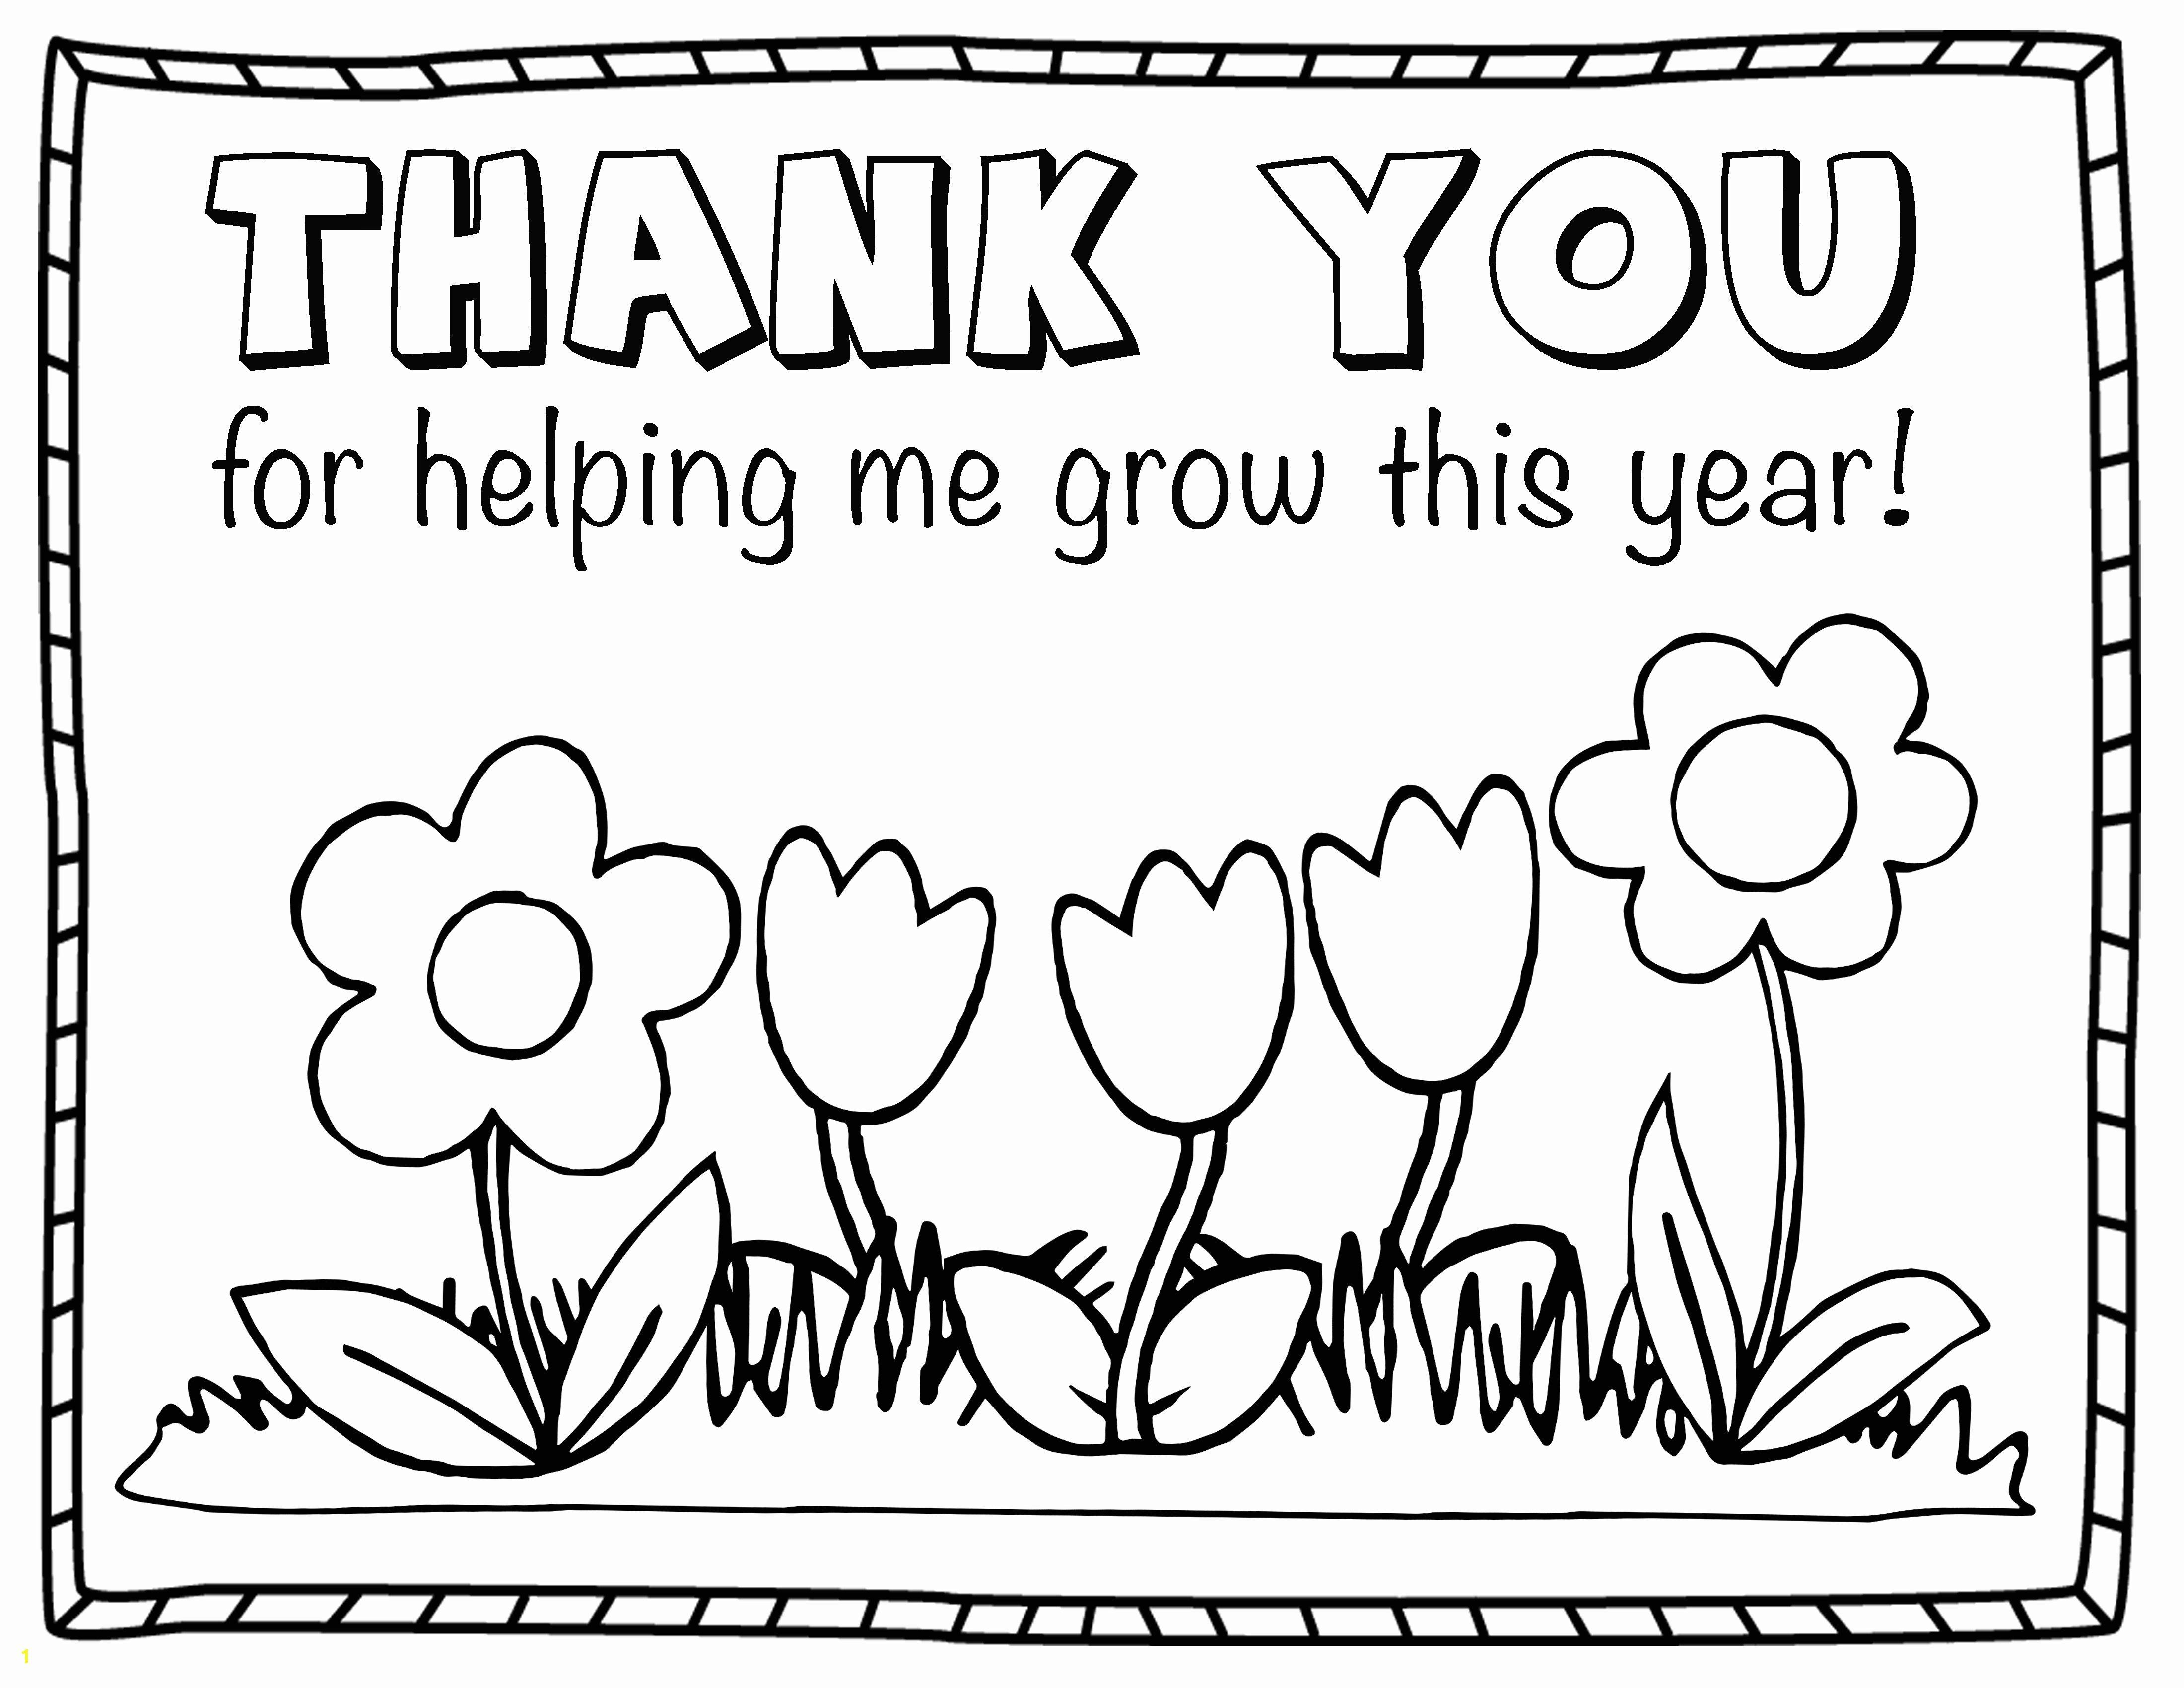 Thank You To Teacher Best Of Thank You Coloring Pages In 2020 Teacher Appreciation Quotes Teacher Appreciation Cards Teacher Appreciation Printables